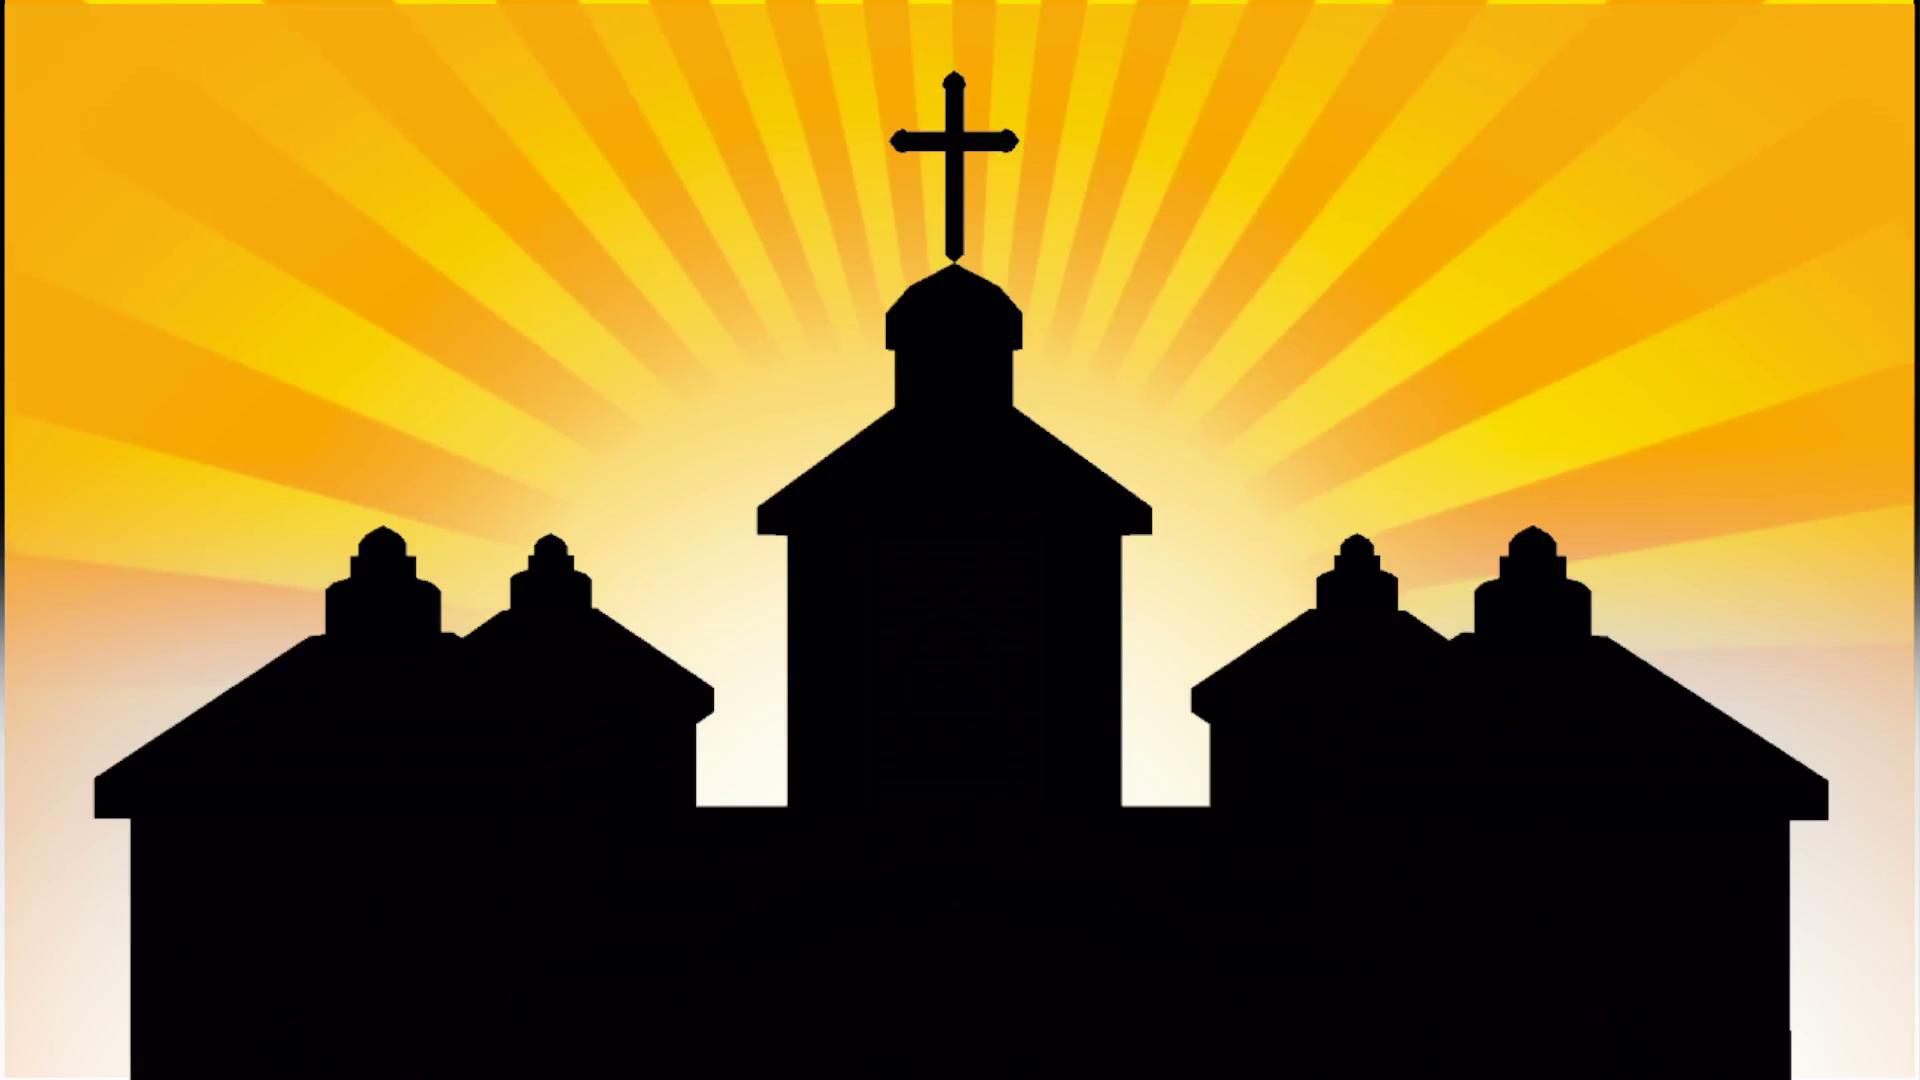 1920x1080 Church Silhouette With Sunburst Background Motion Background